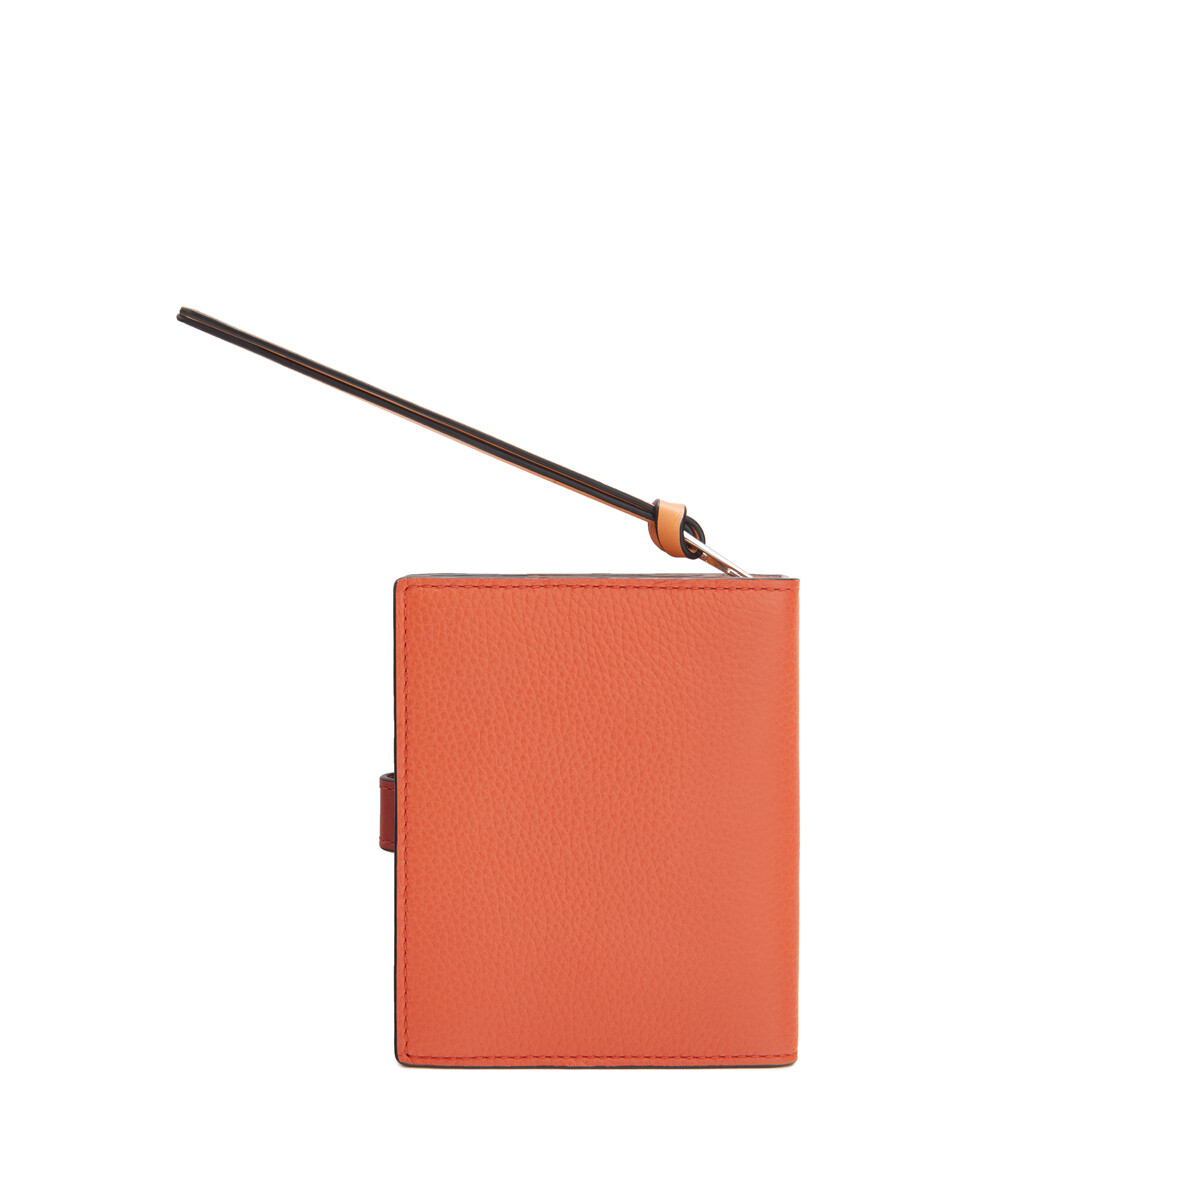 LOEWE Compact Zip Wallet Coral/Soft Apricot front